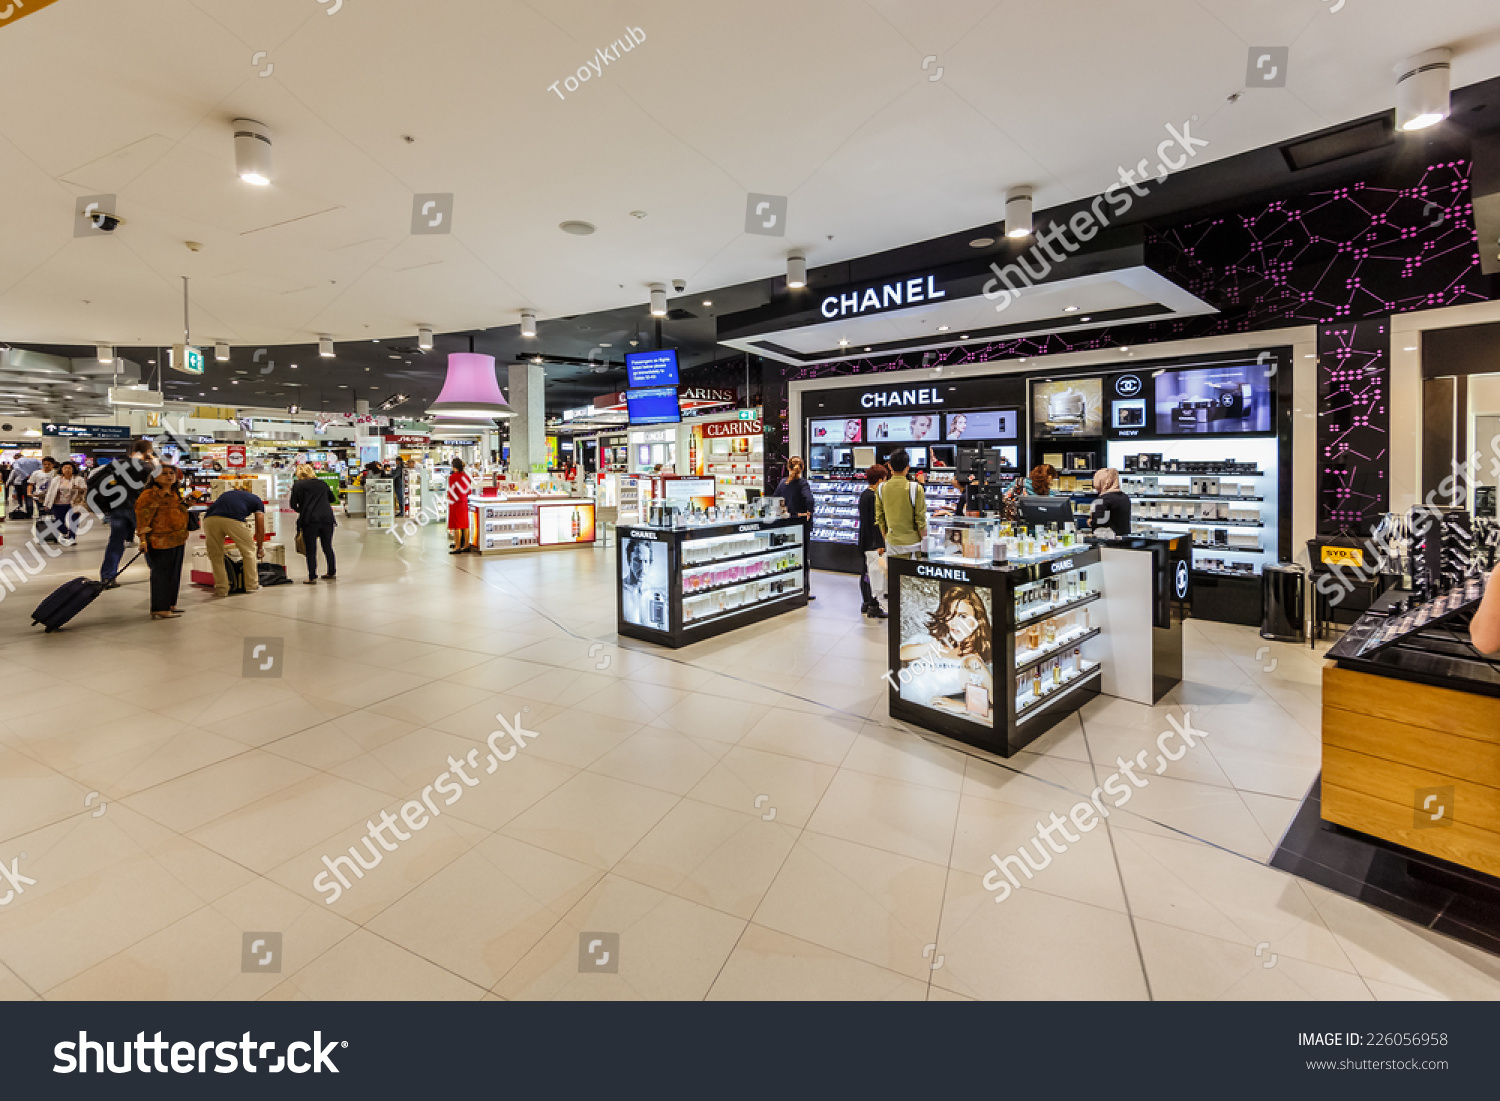 Sydney Airport Shops Sydney May 17 Duty Free Shops Stock Photo Edit Now 226056958